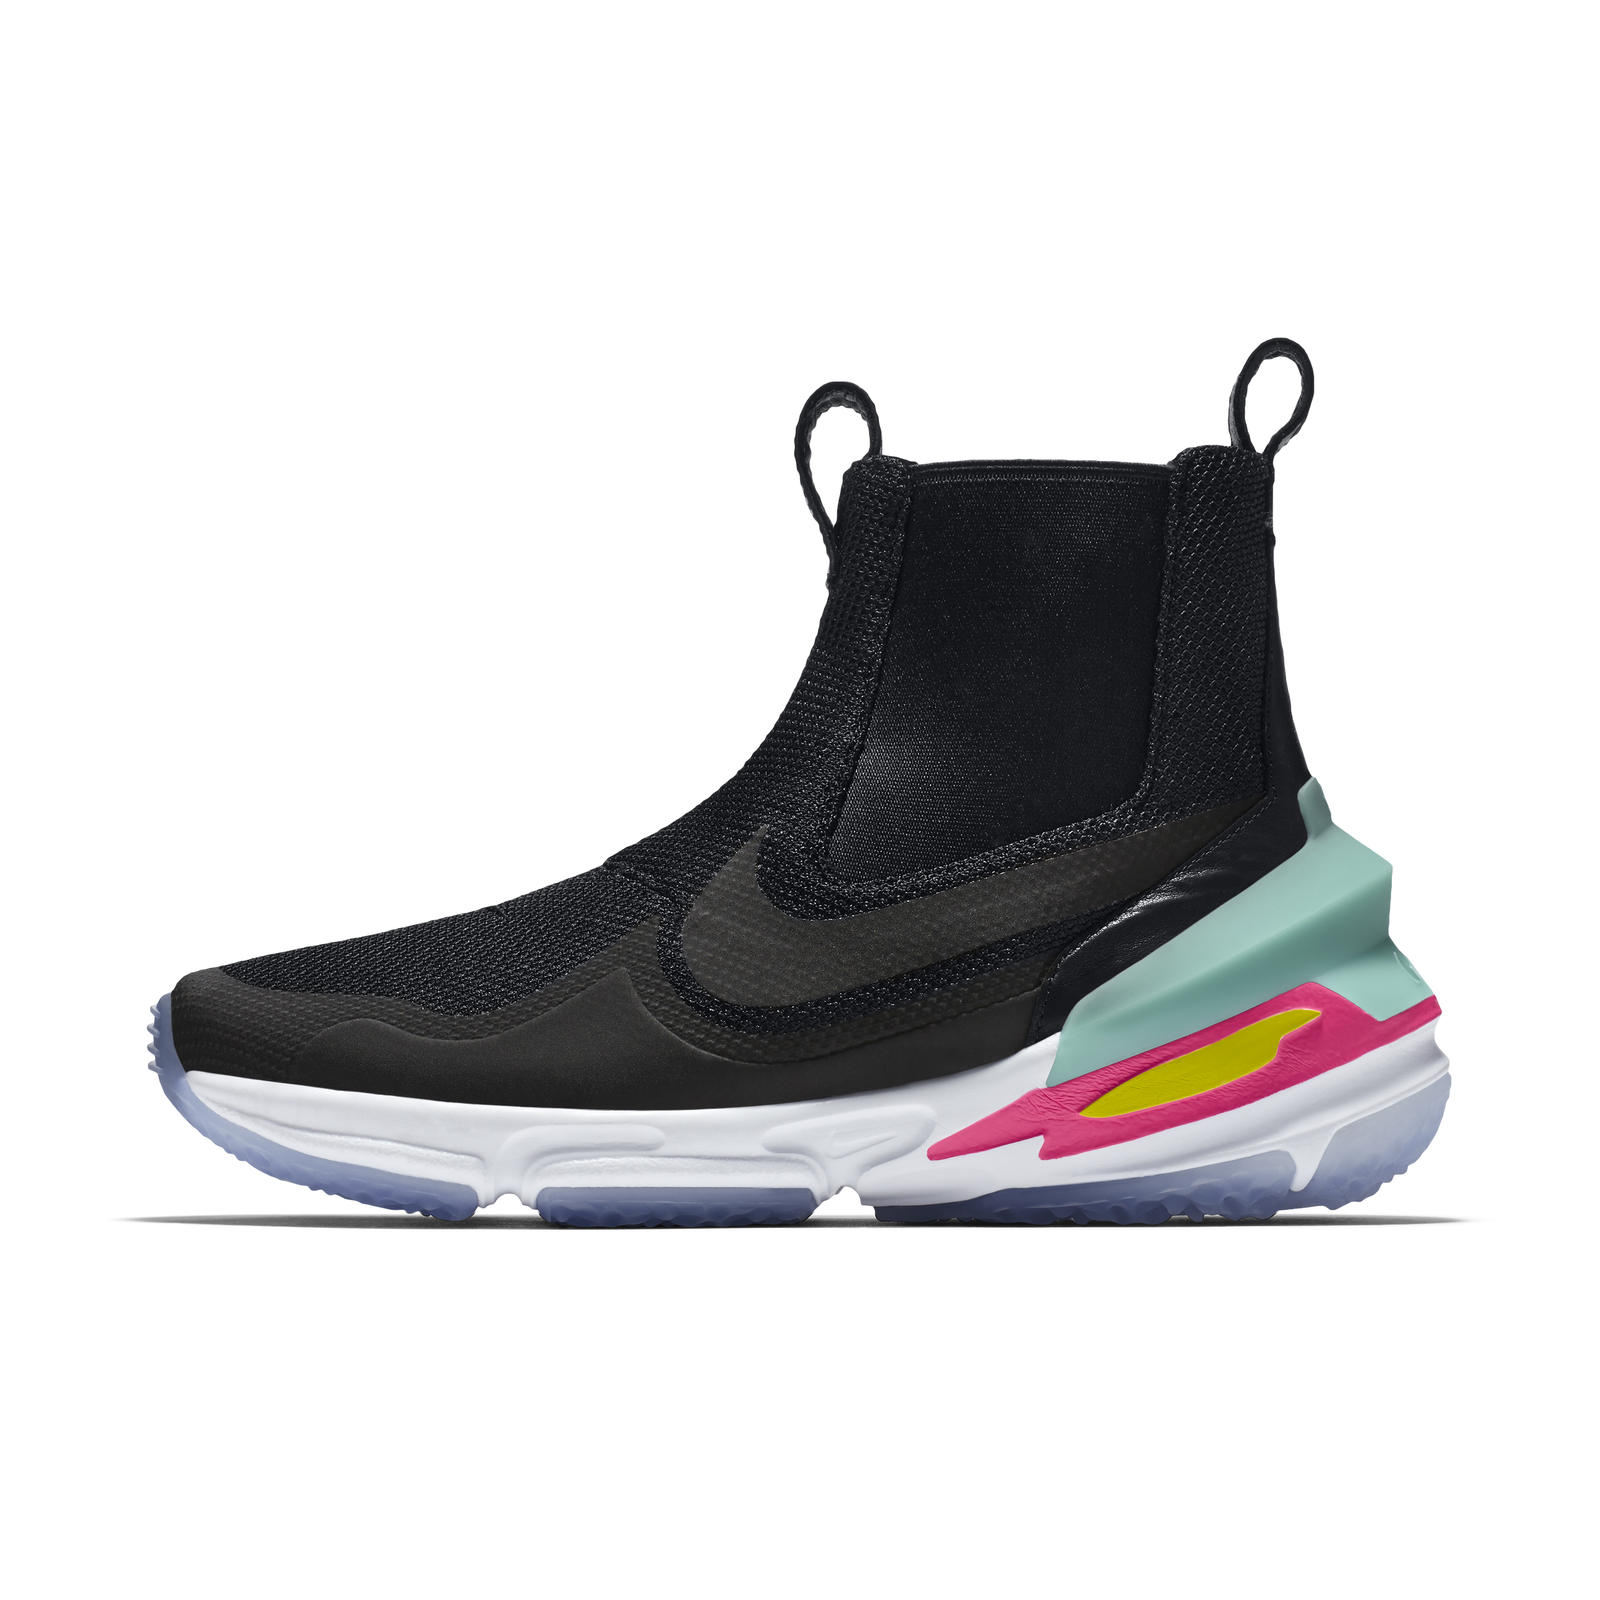 premium selection 284f0 7e309 NikeLab Air Zoom Legend x RT 11